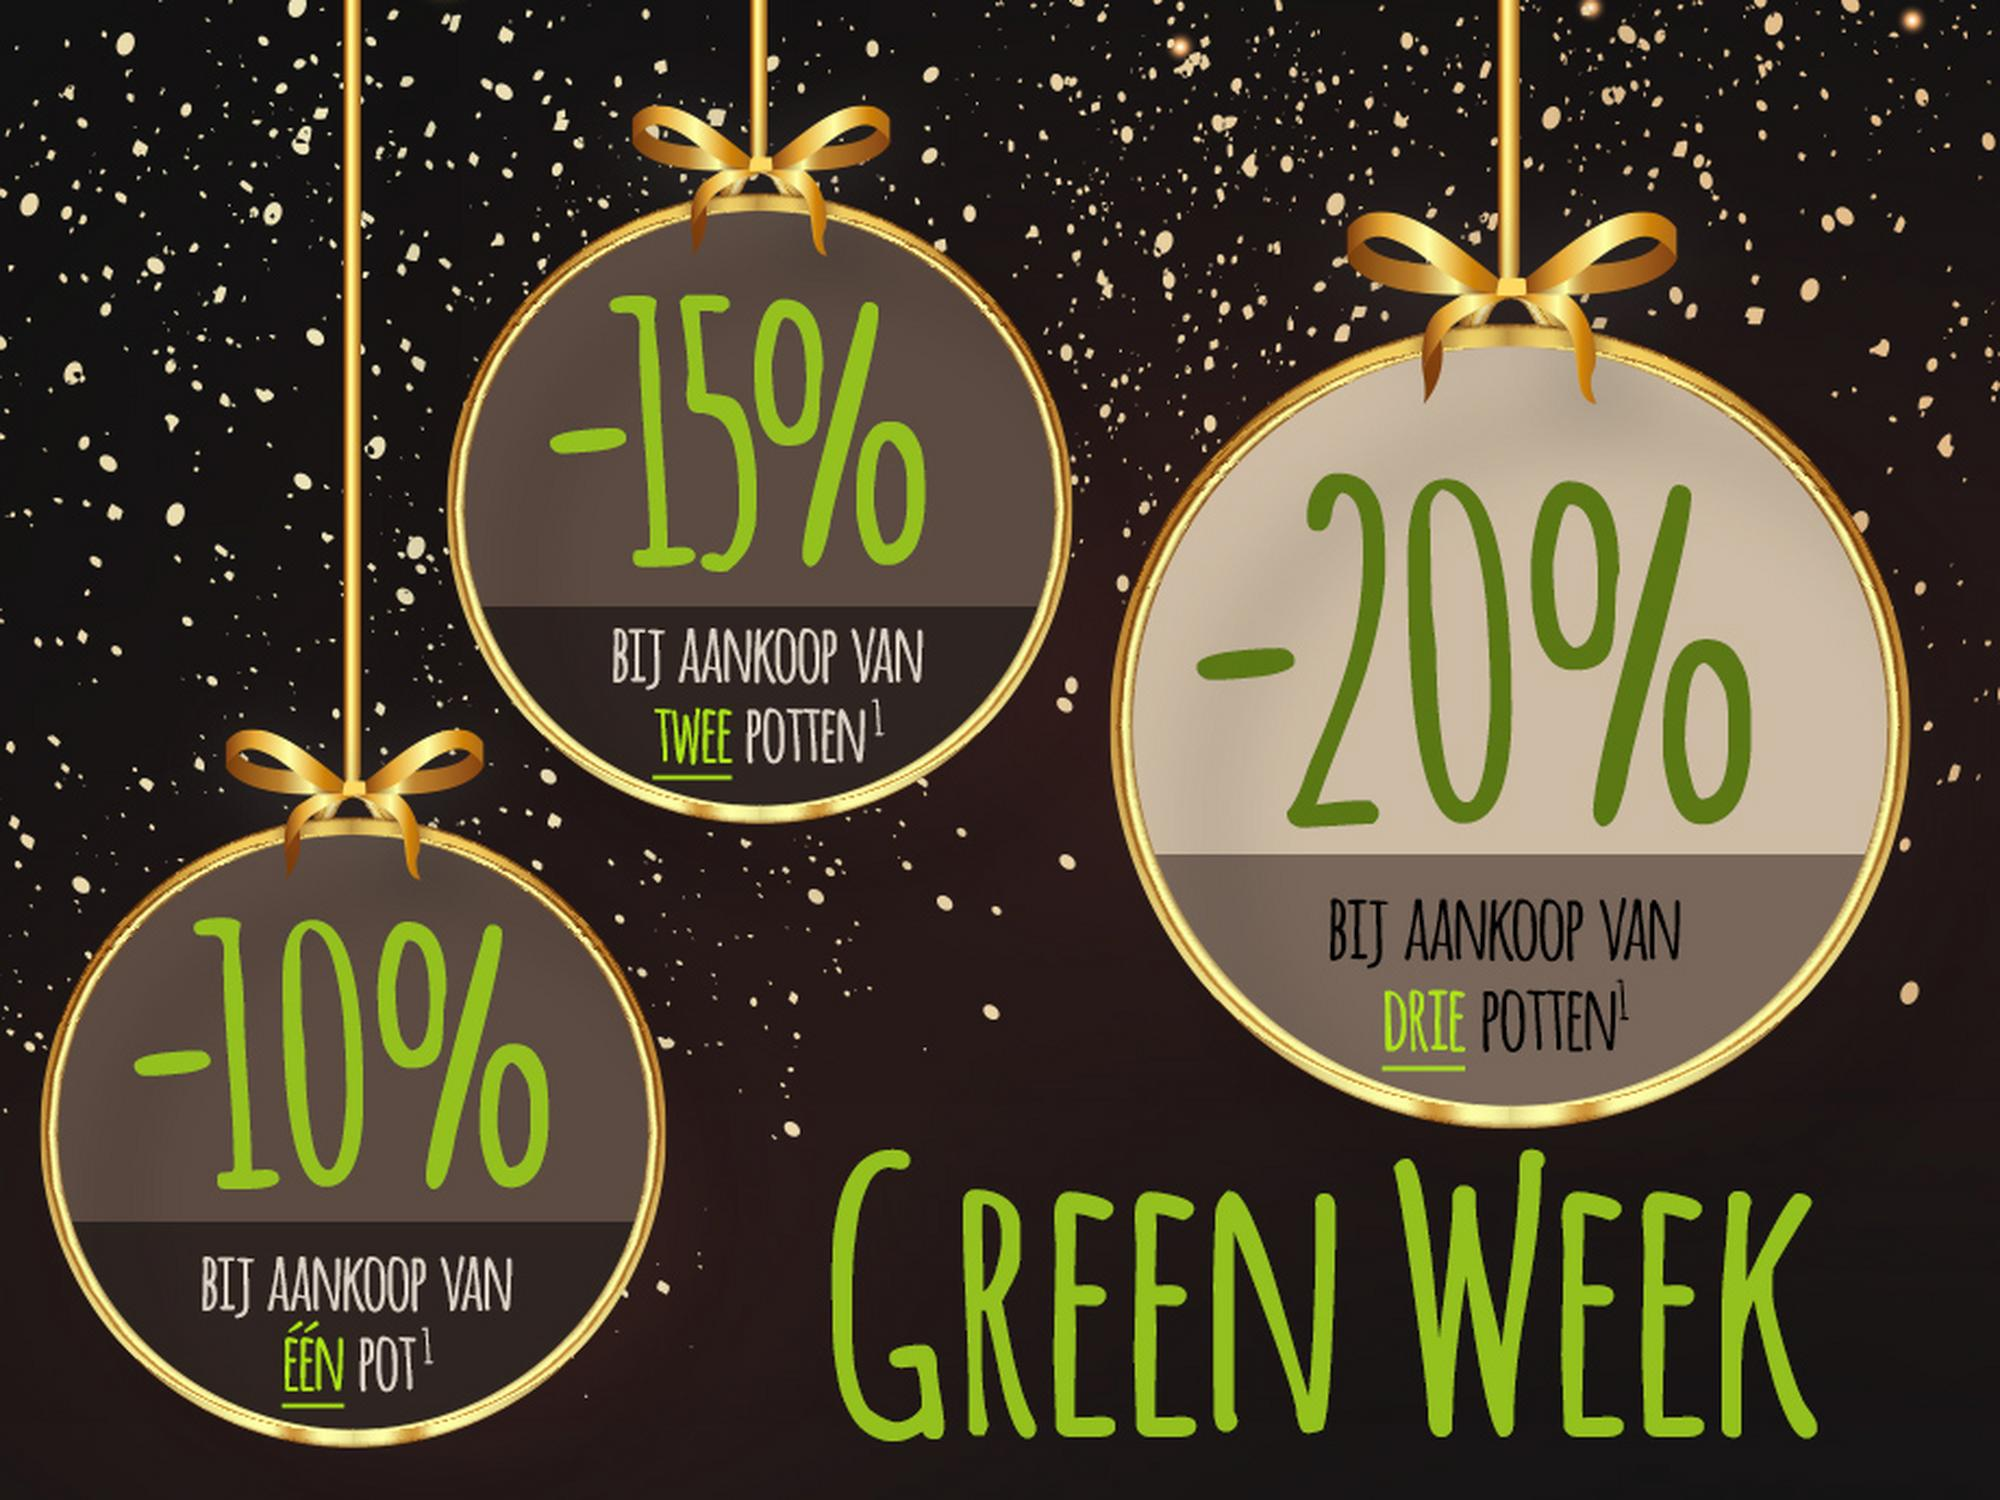 Green Week: Extra korting van 23-30 november 20200